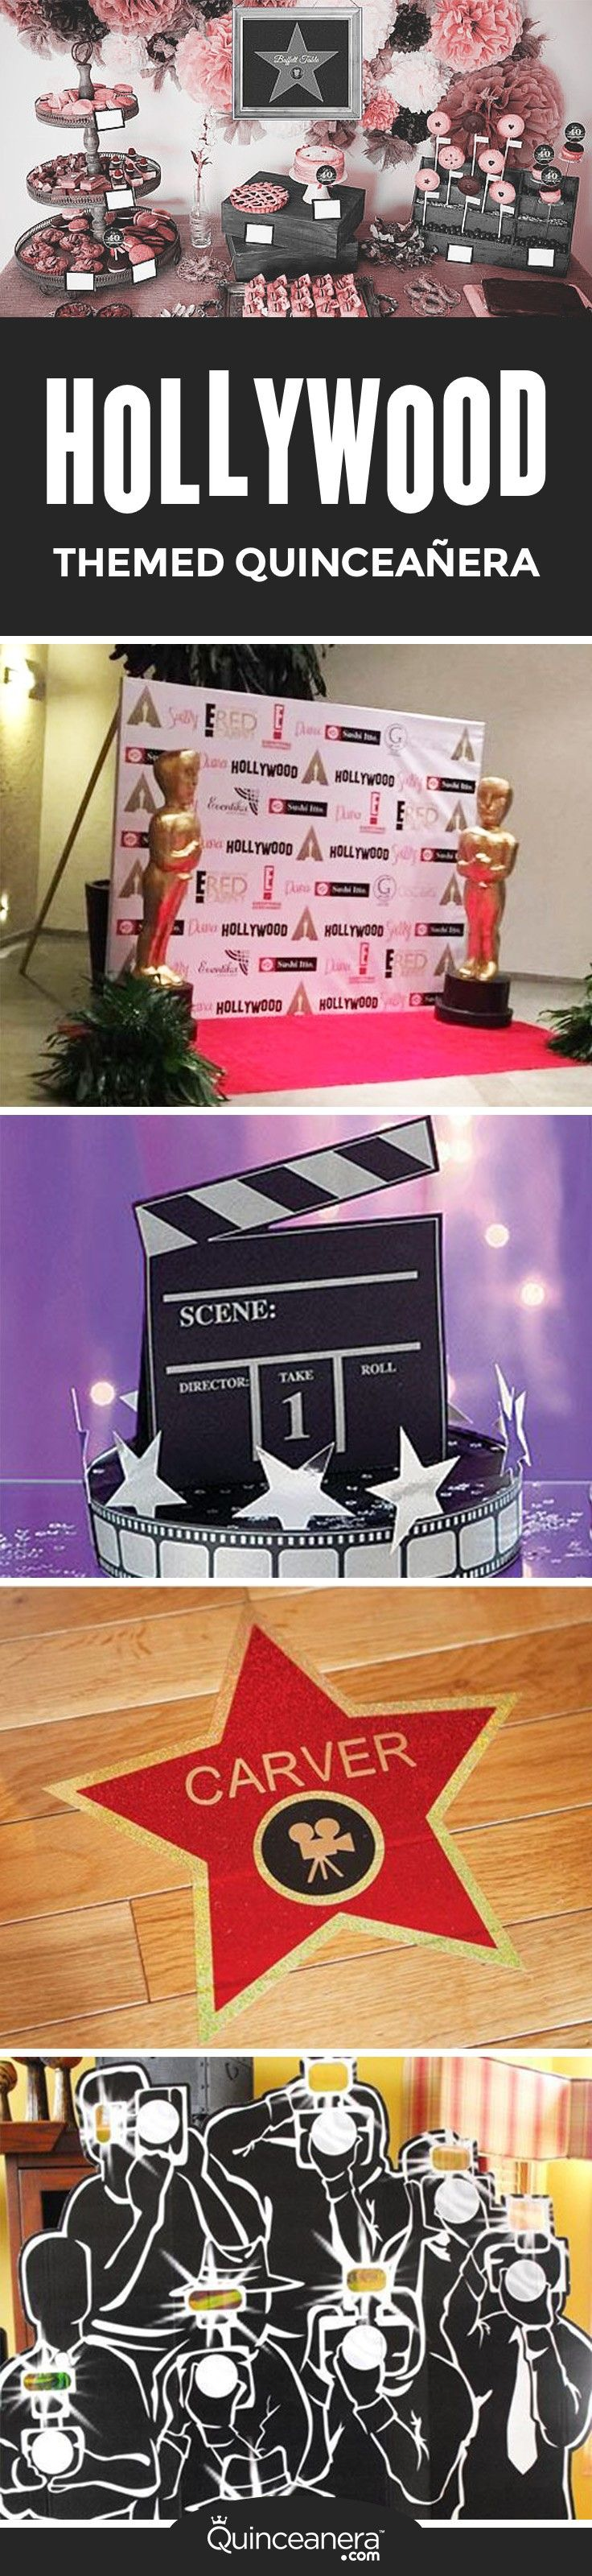 Before deciding on the decor, you must pick the colors you wish to use: black, white, red and gold are the most popular for such a theme! - See more at: http://www.quinceanera.com/decorations-themes/hollywood-theme-quinceanera/?utm_source=pinterest&utm_medium=social&utm_campaign=article-031016-decorations-themes-hollywood-theme-quinceanera#sthash.aKLcMdIO.dpuf